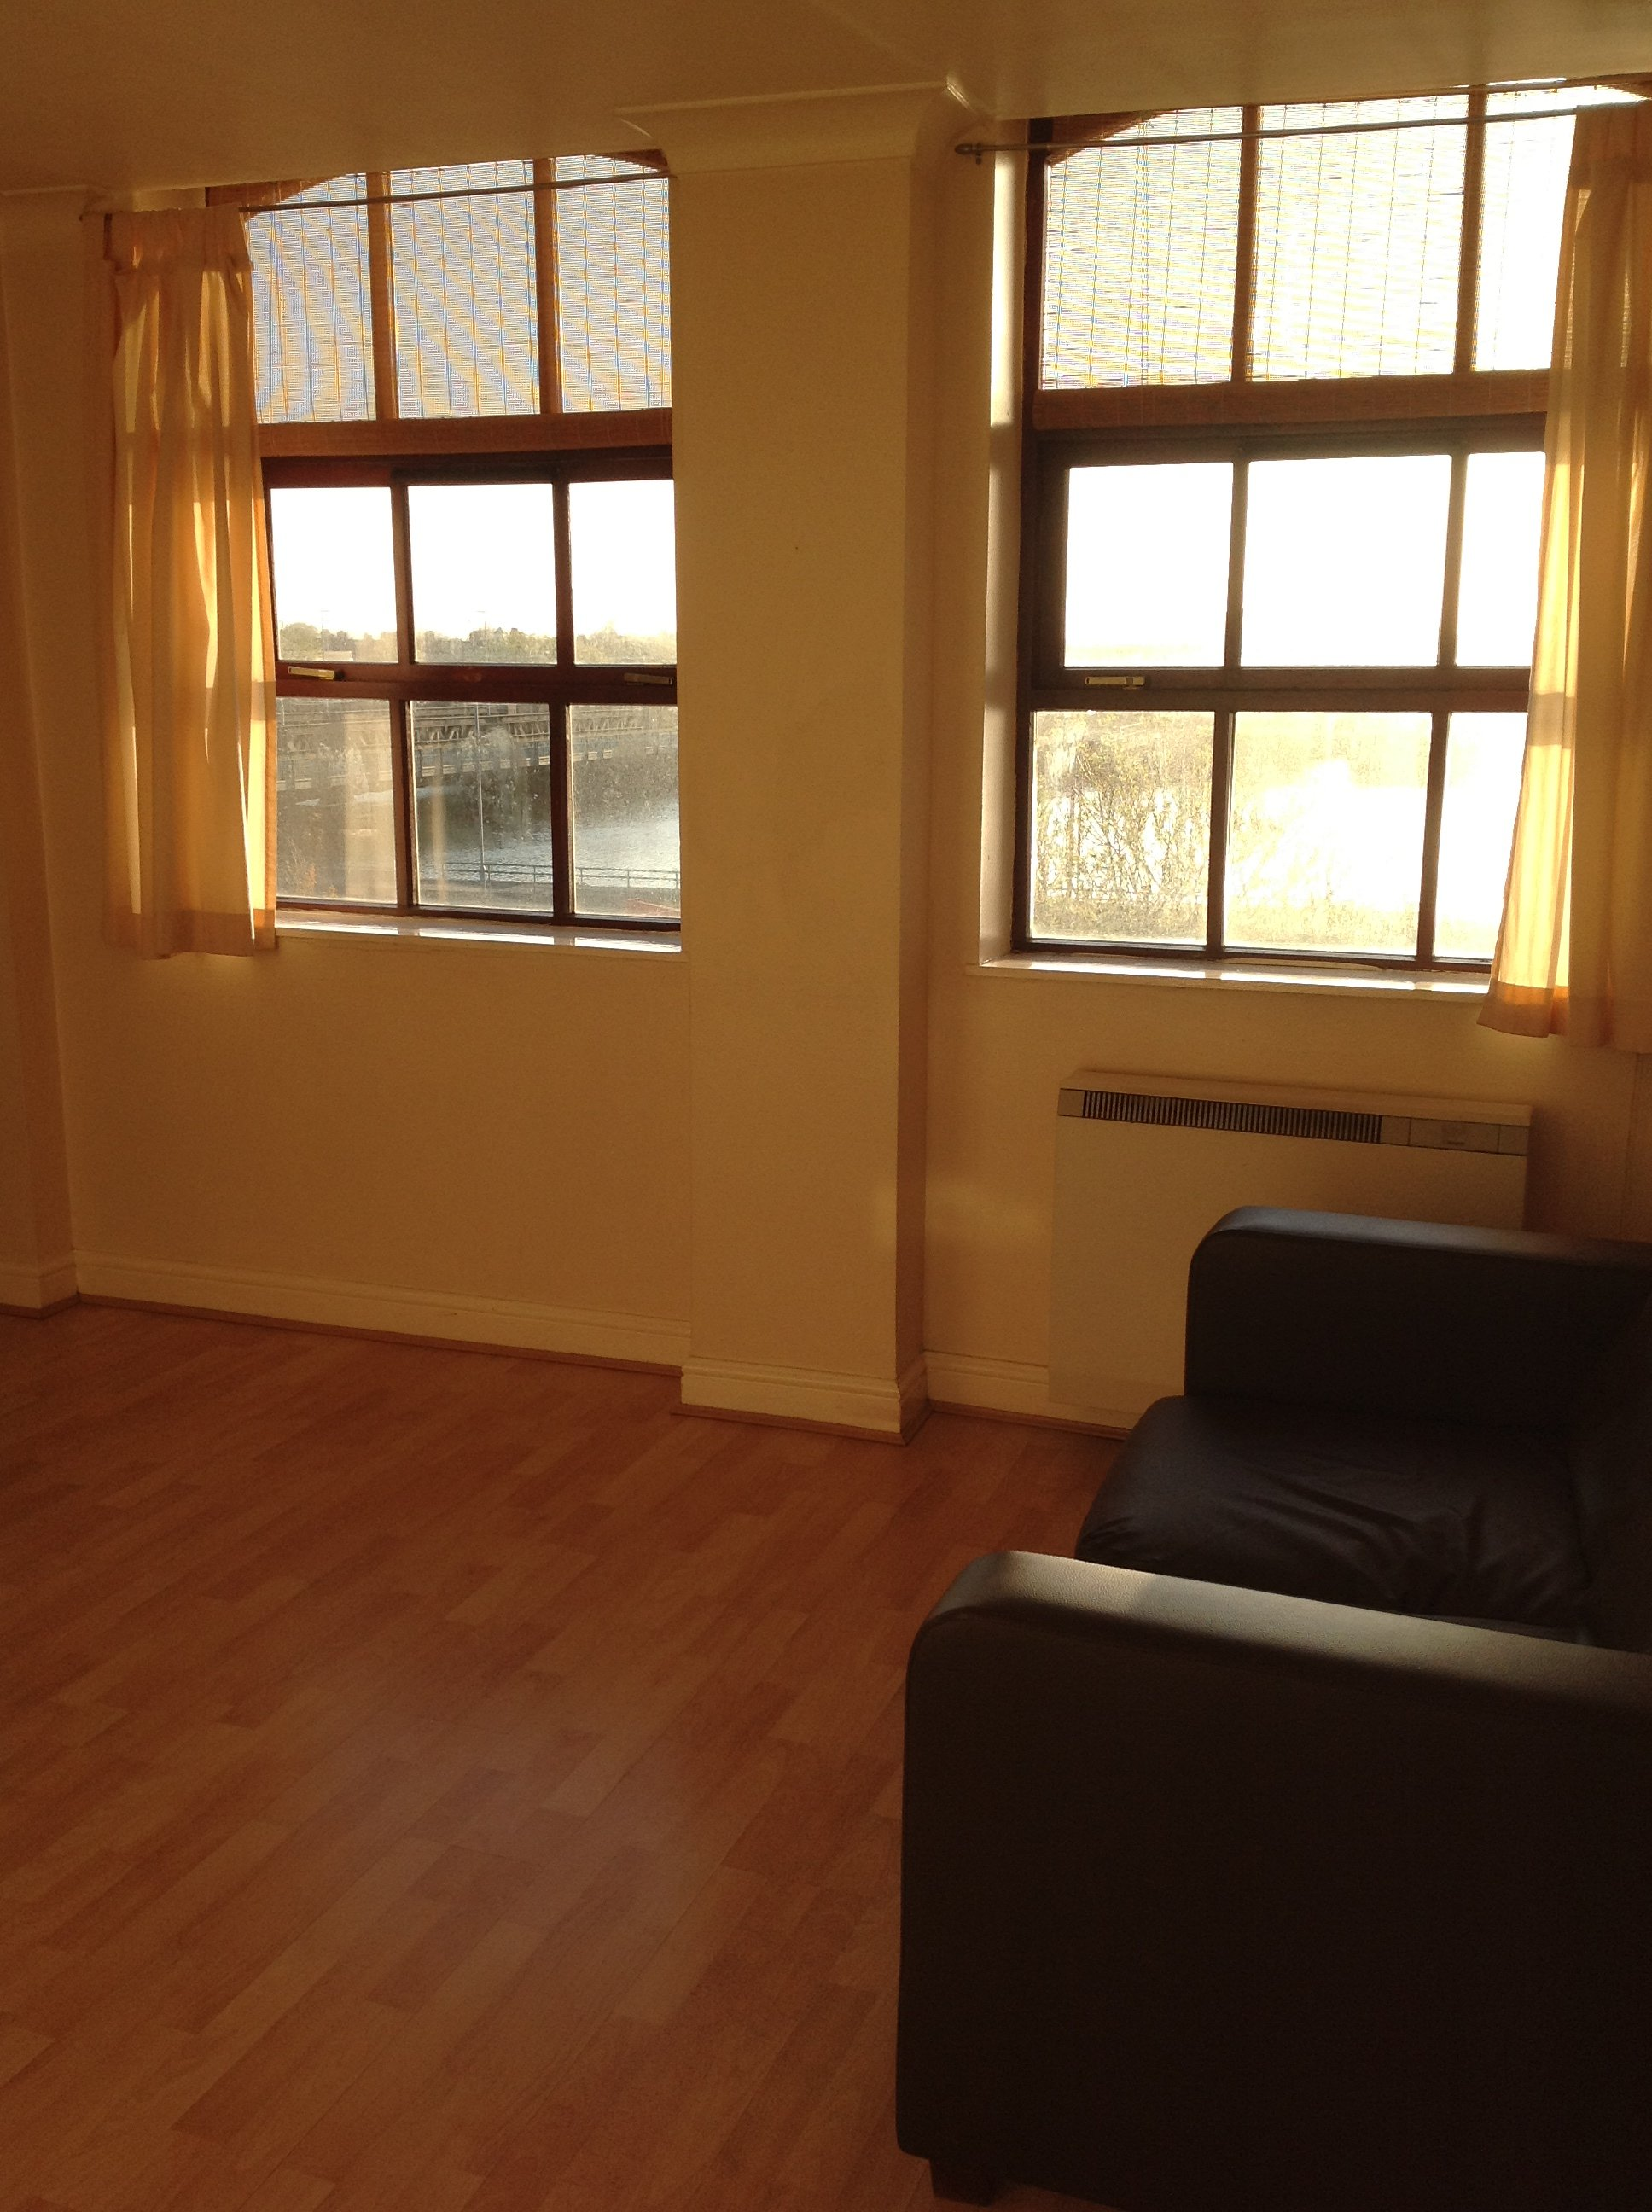 1 Bedroom Apartments Mn: Victoria Street, Grimsby, DN31 1PT